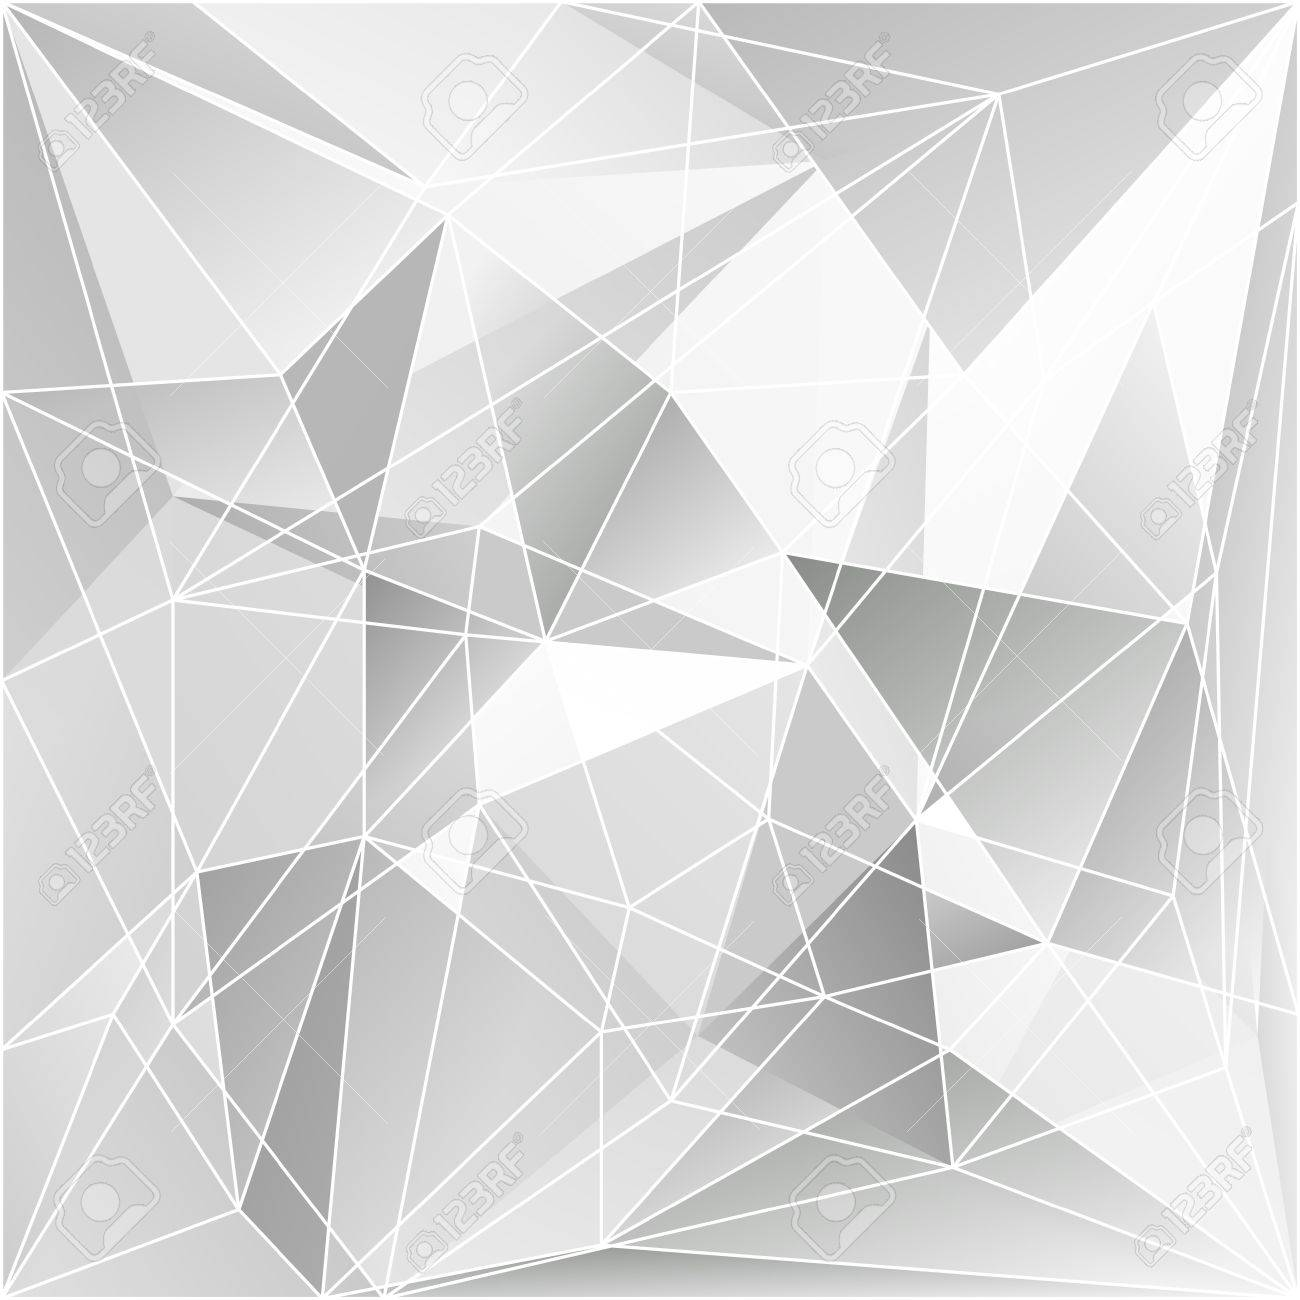 Abstract Triangle Background Stock Vector - 21330511